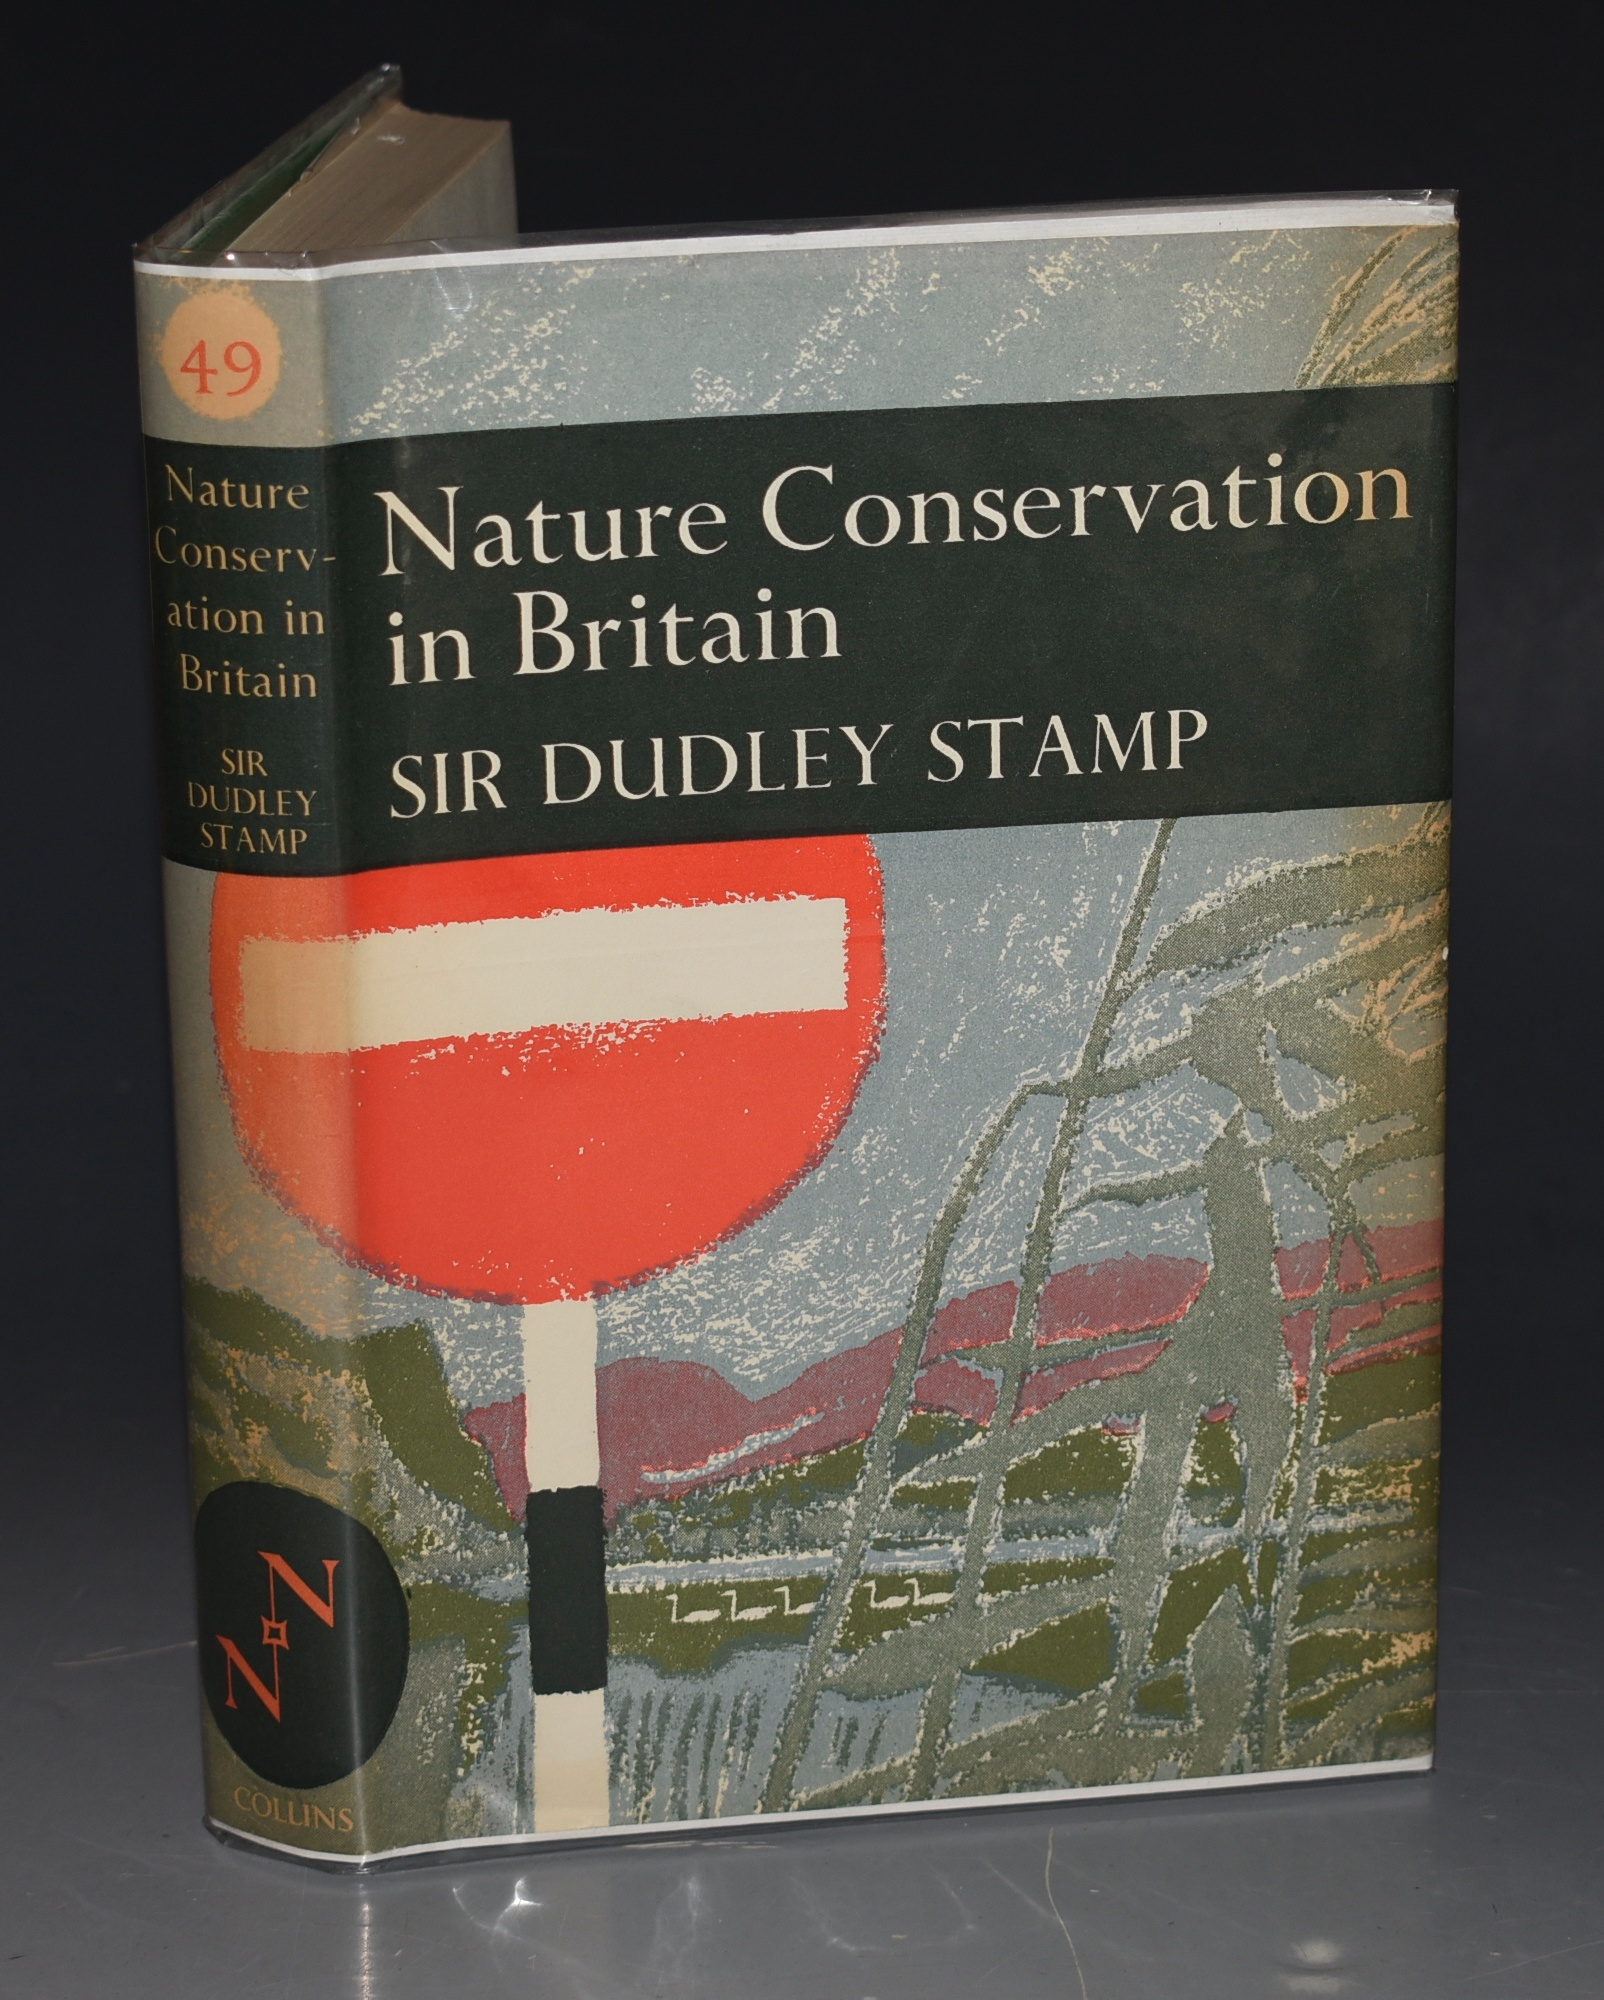 Image for Nature Conservation in Britain. With a list of Conservation Areas in England, Wales and Scotland compiled by James Fisher, Deputy Chairman, the Countryside Commission. (The New Naturalist No. 49).